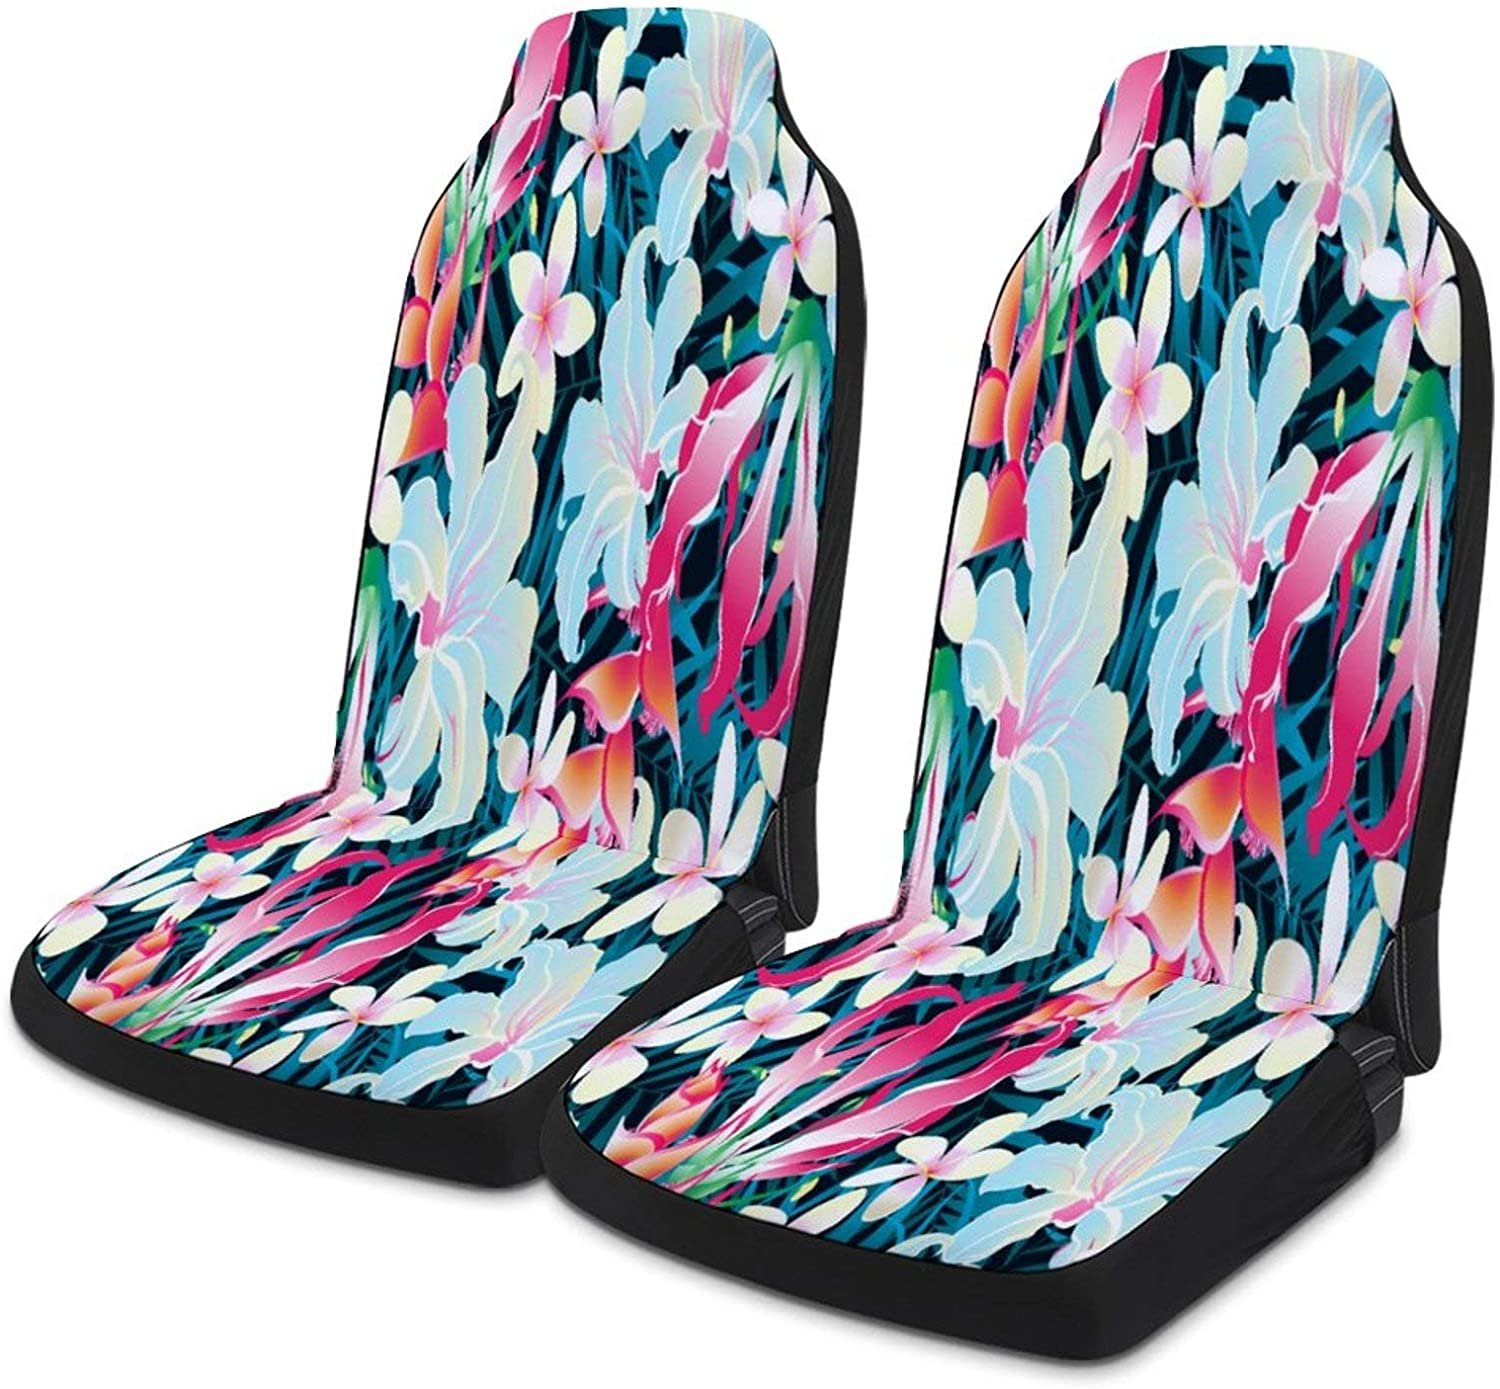 Colorful Tropical Flowers Universal Fit Car Seat Covers, 2pc Auto Front Drive Seats Protector Compatible Fits for Most Car SUV Sedan Truck Van